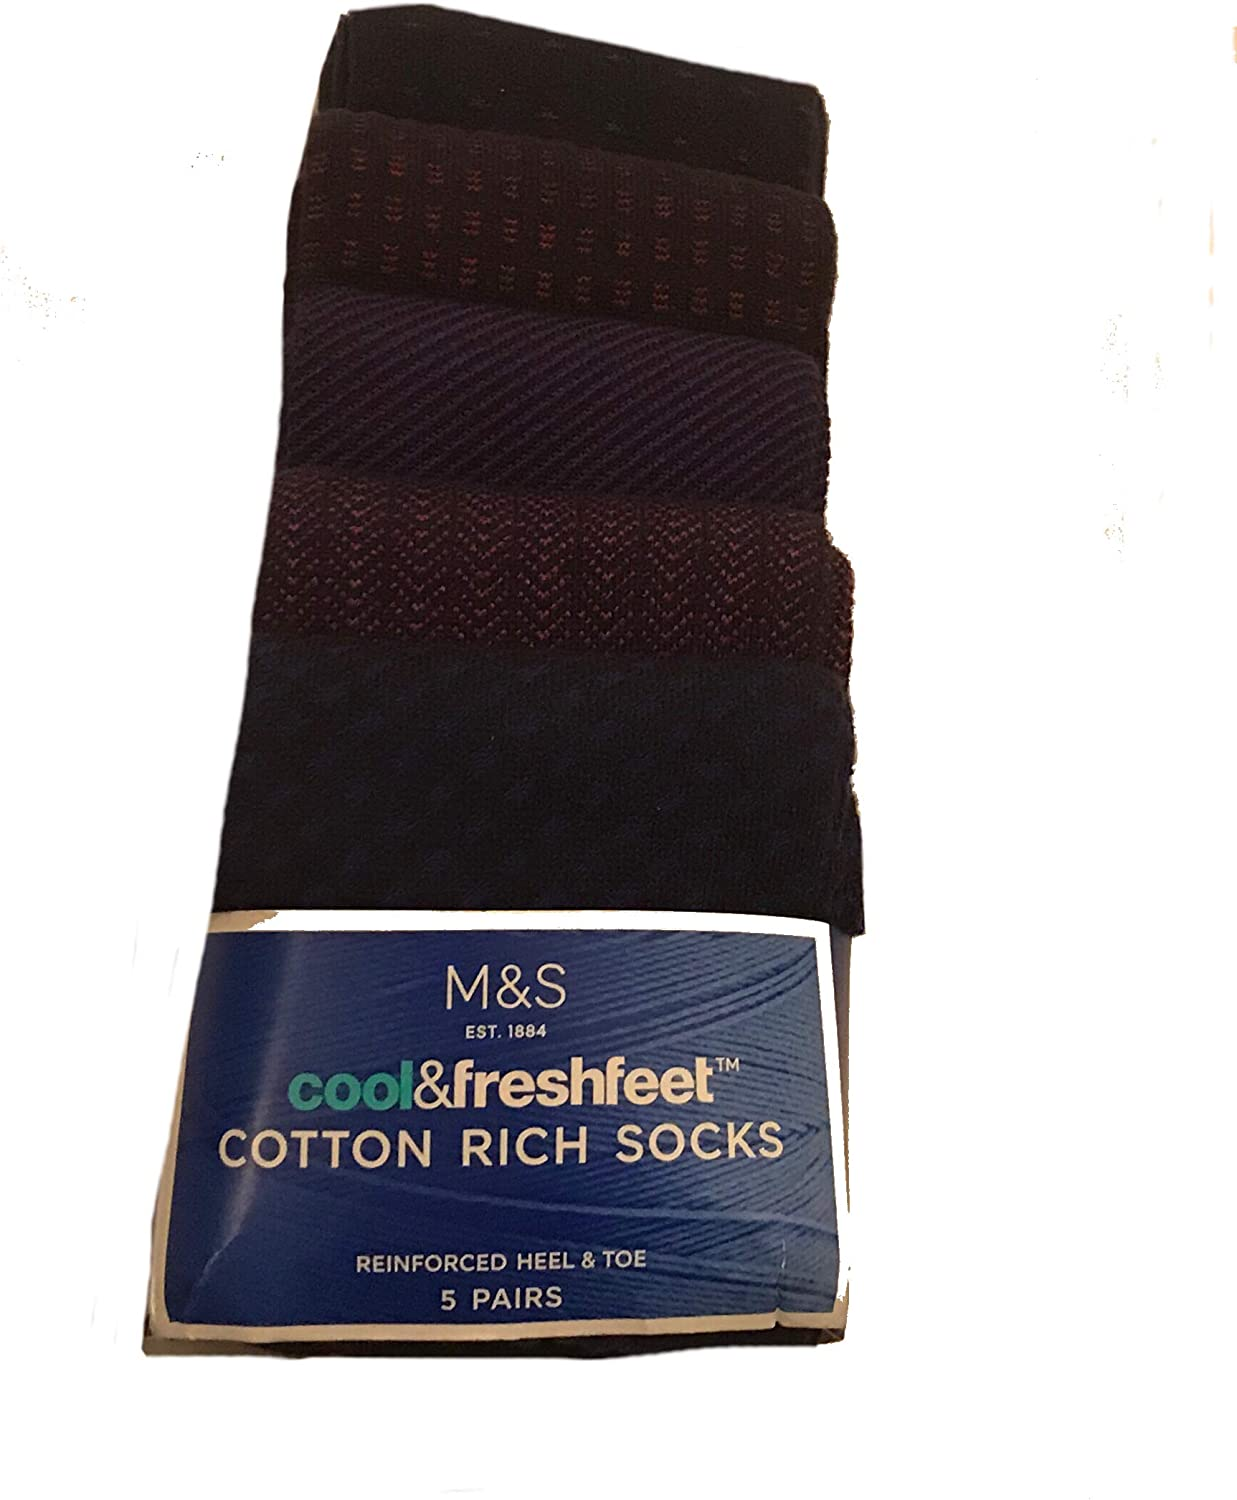 M/&S MARKS AND SPENCER Men/'s Cotton Rich socks 5 PAIRS Black//Grey selection